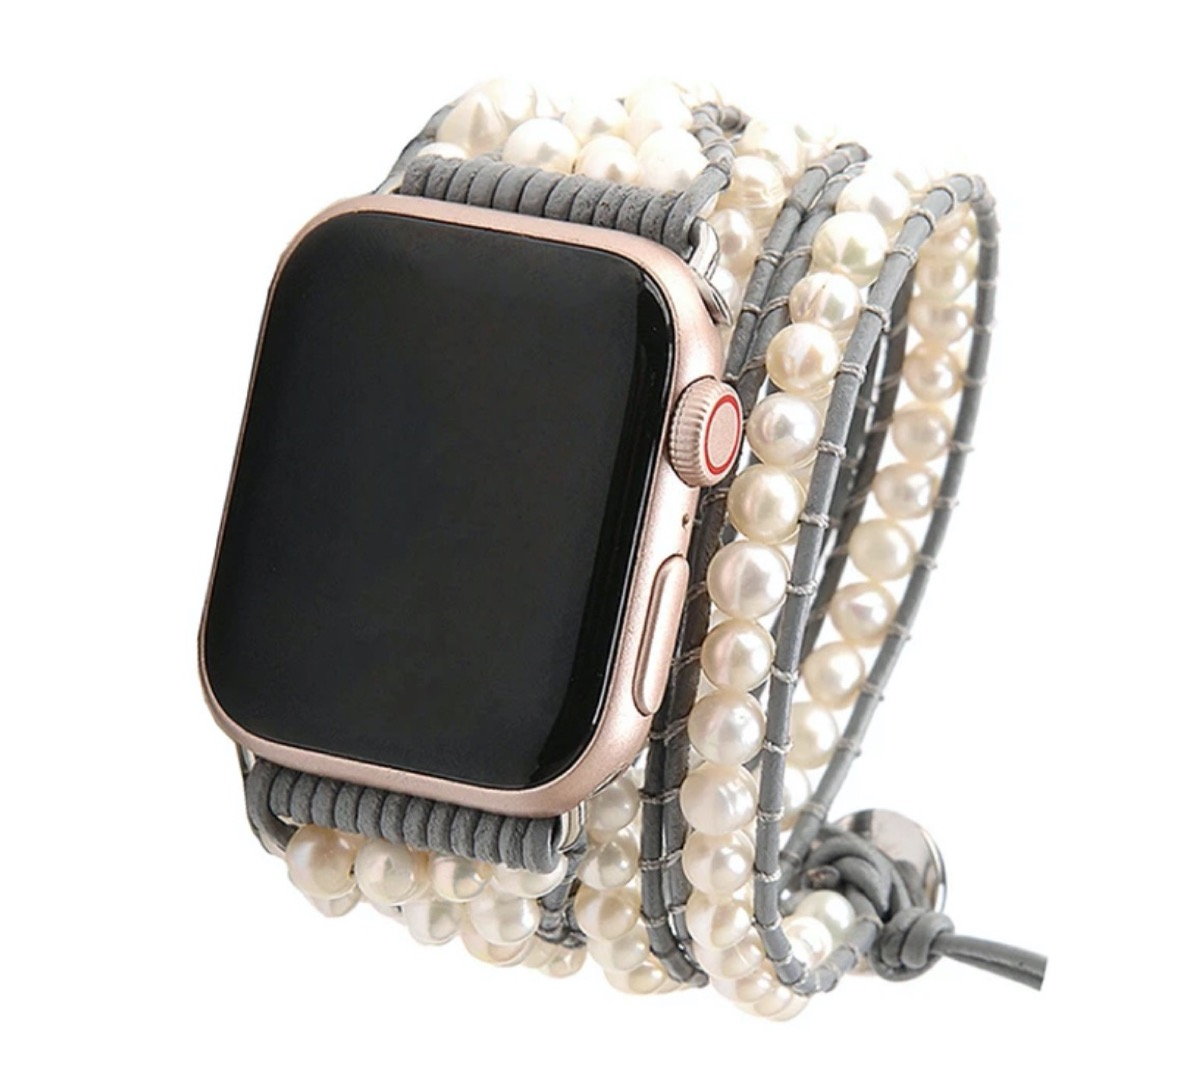 apple watch with pearl strap